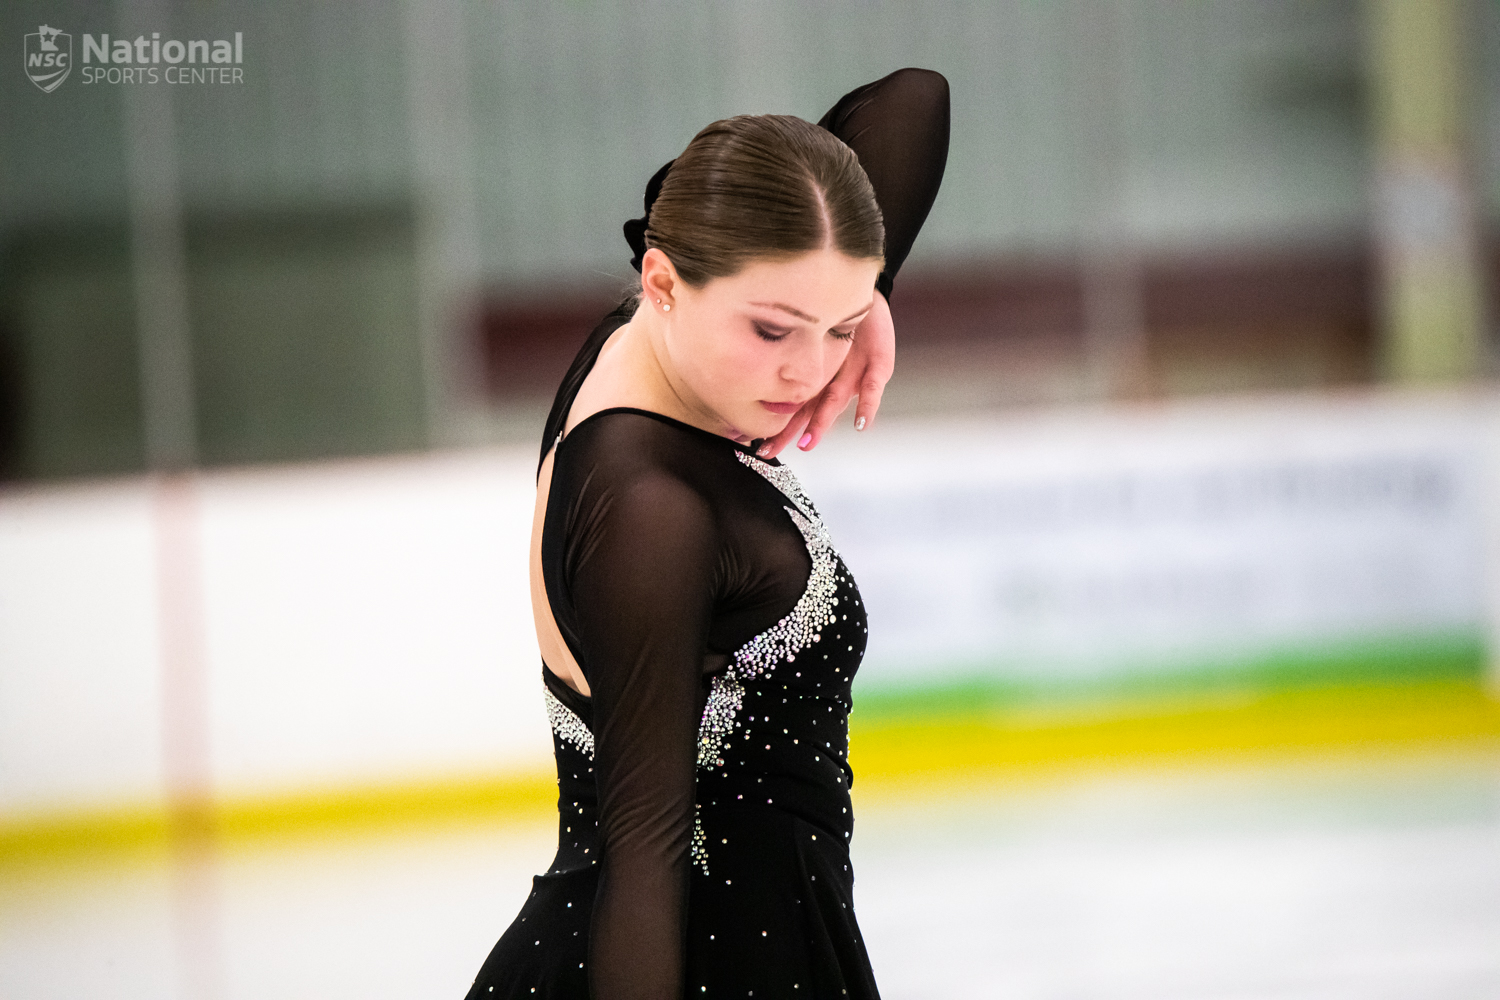 The NSC Skating School put on Frosty Blades, its annual figure skating competition at the Super Rink.